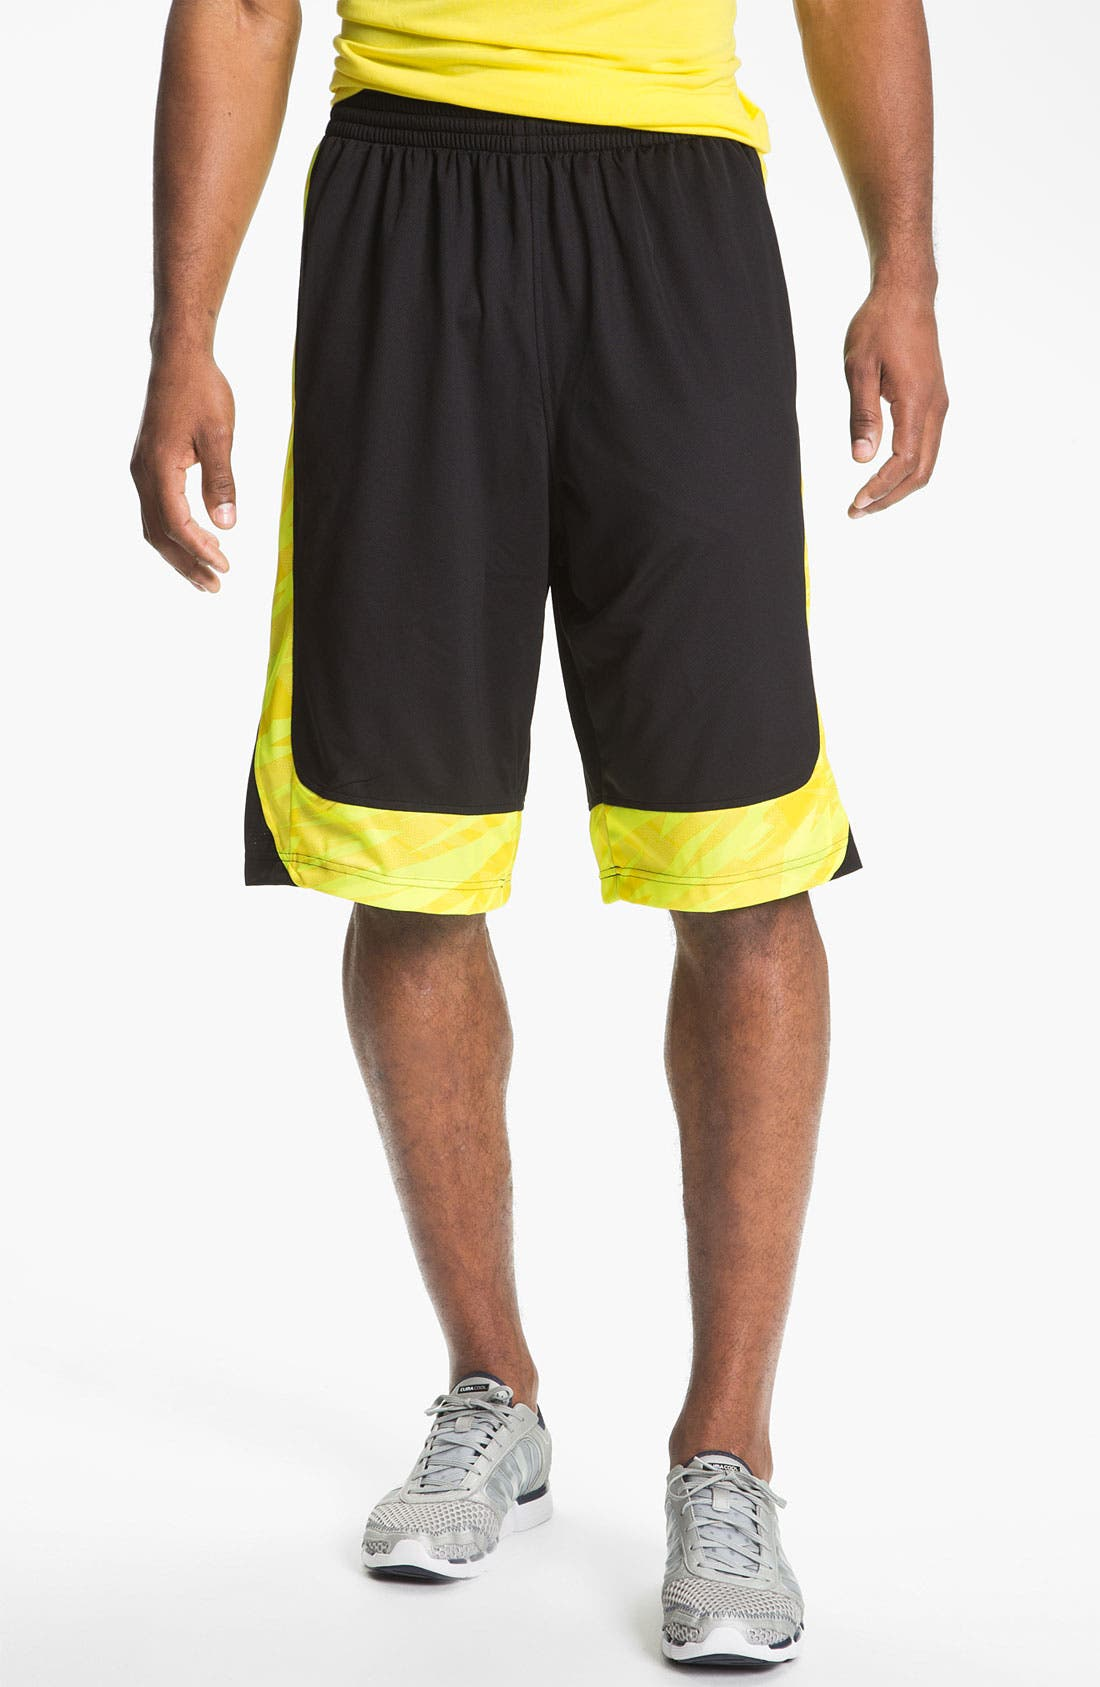 Alternate Image 1 Selected - adidas 'Edge Camo' Shorts